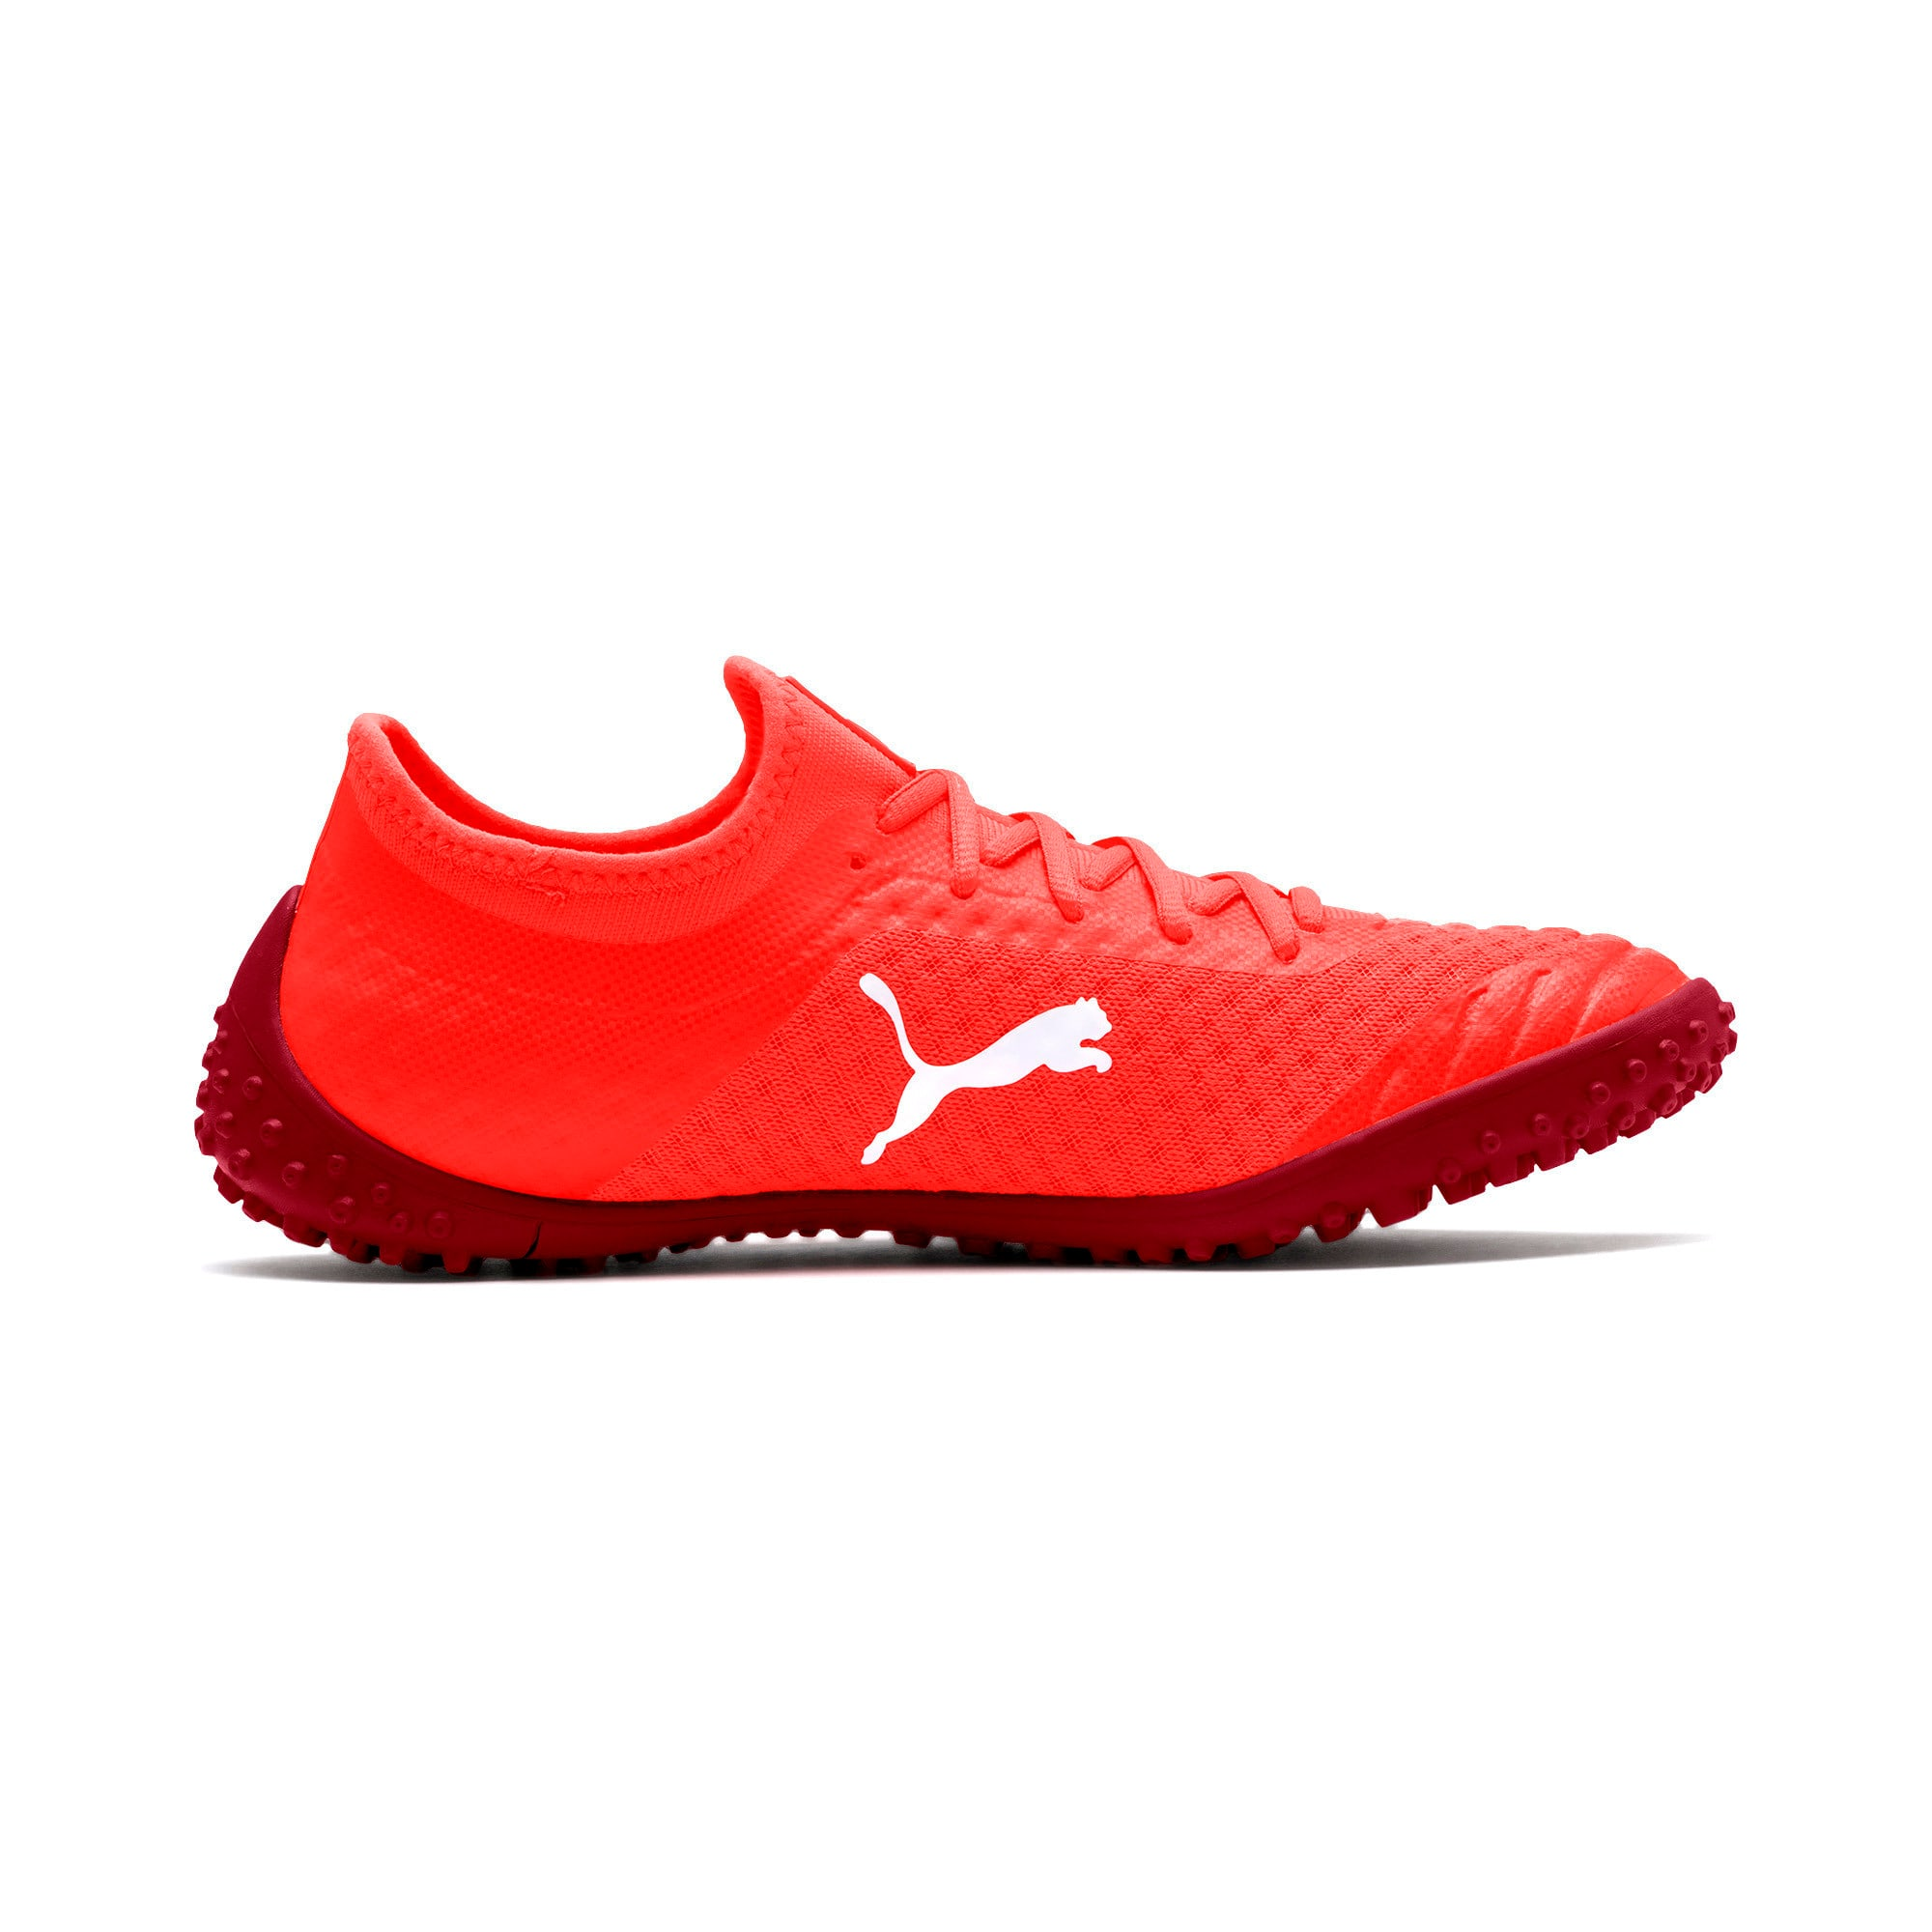 Thumbnail 6 of 365 Concrete 2 ST Men's Soccer Shoes, Nrgy Red-Rhubarb, medium